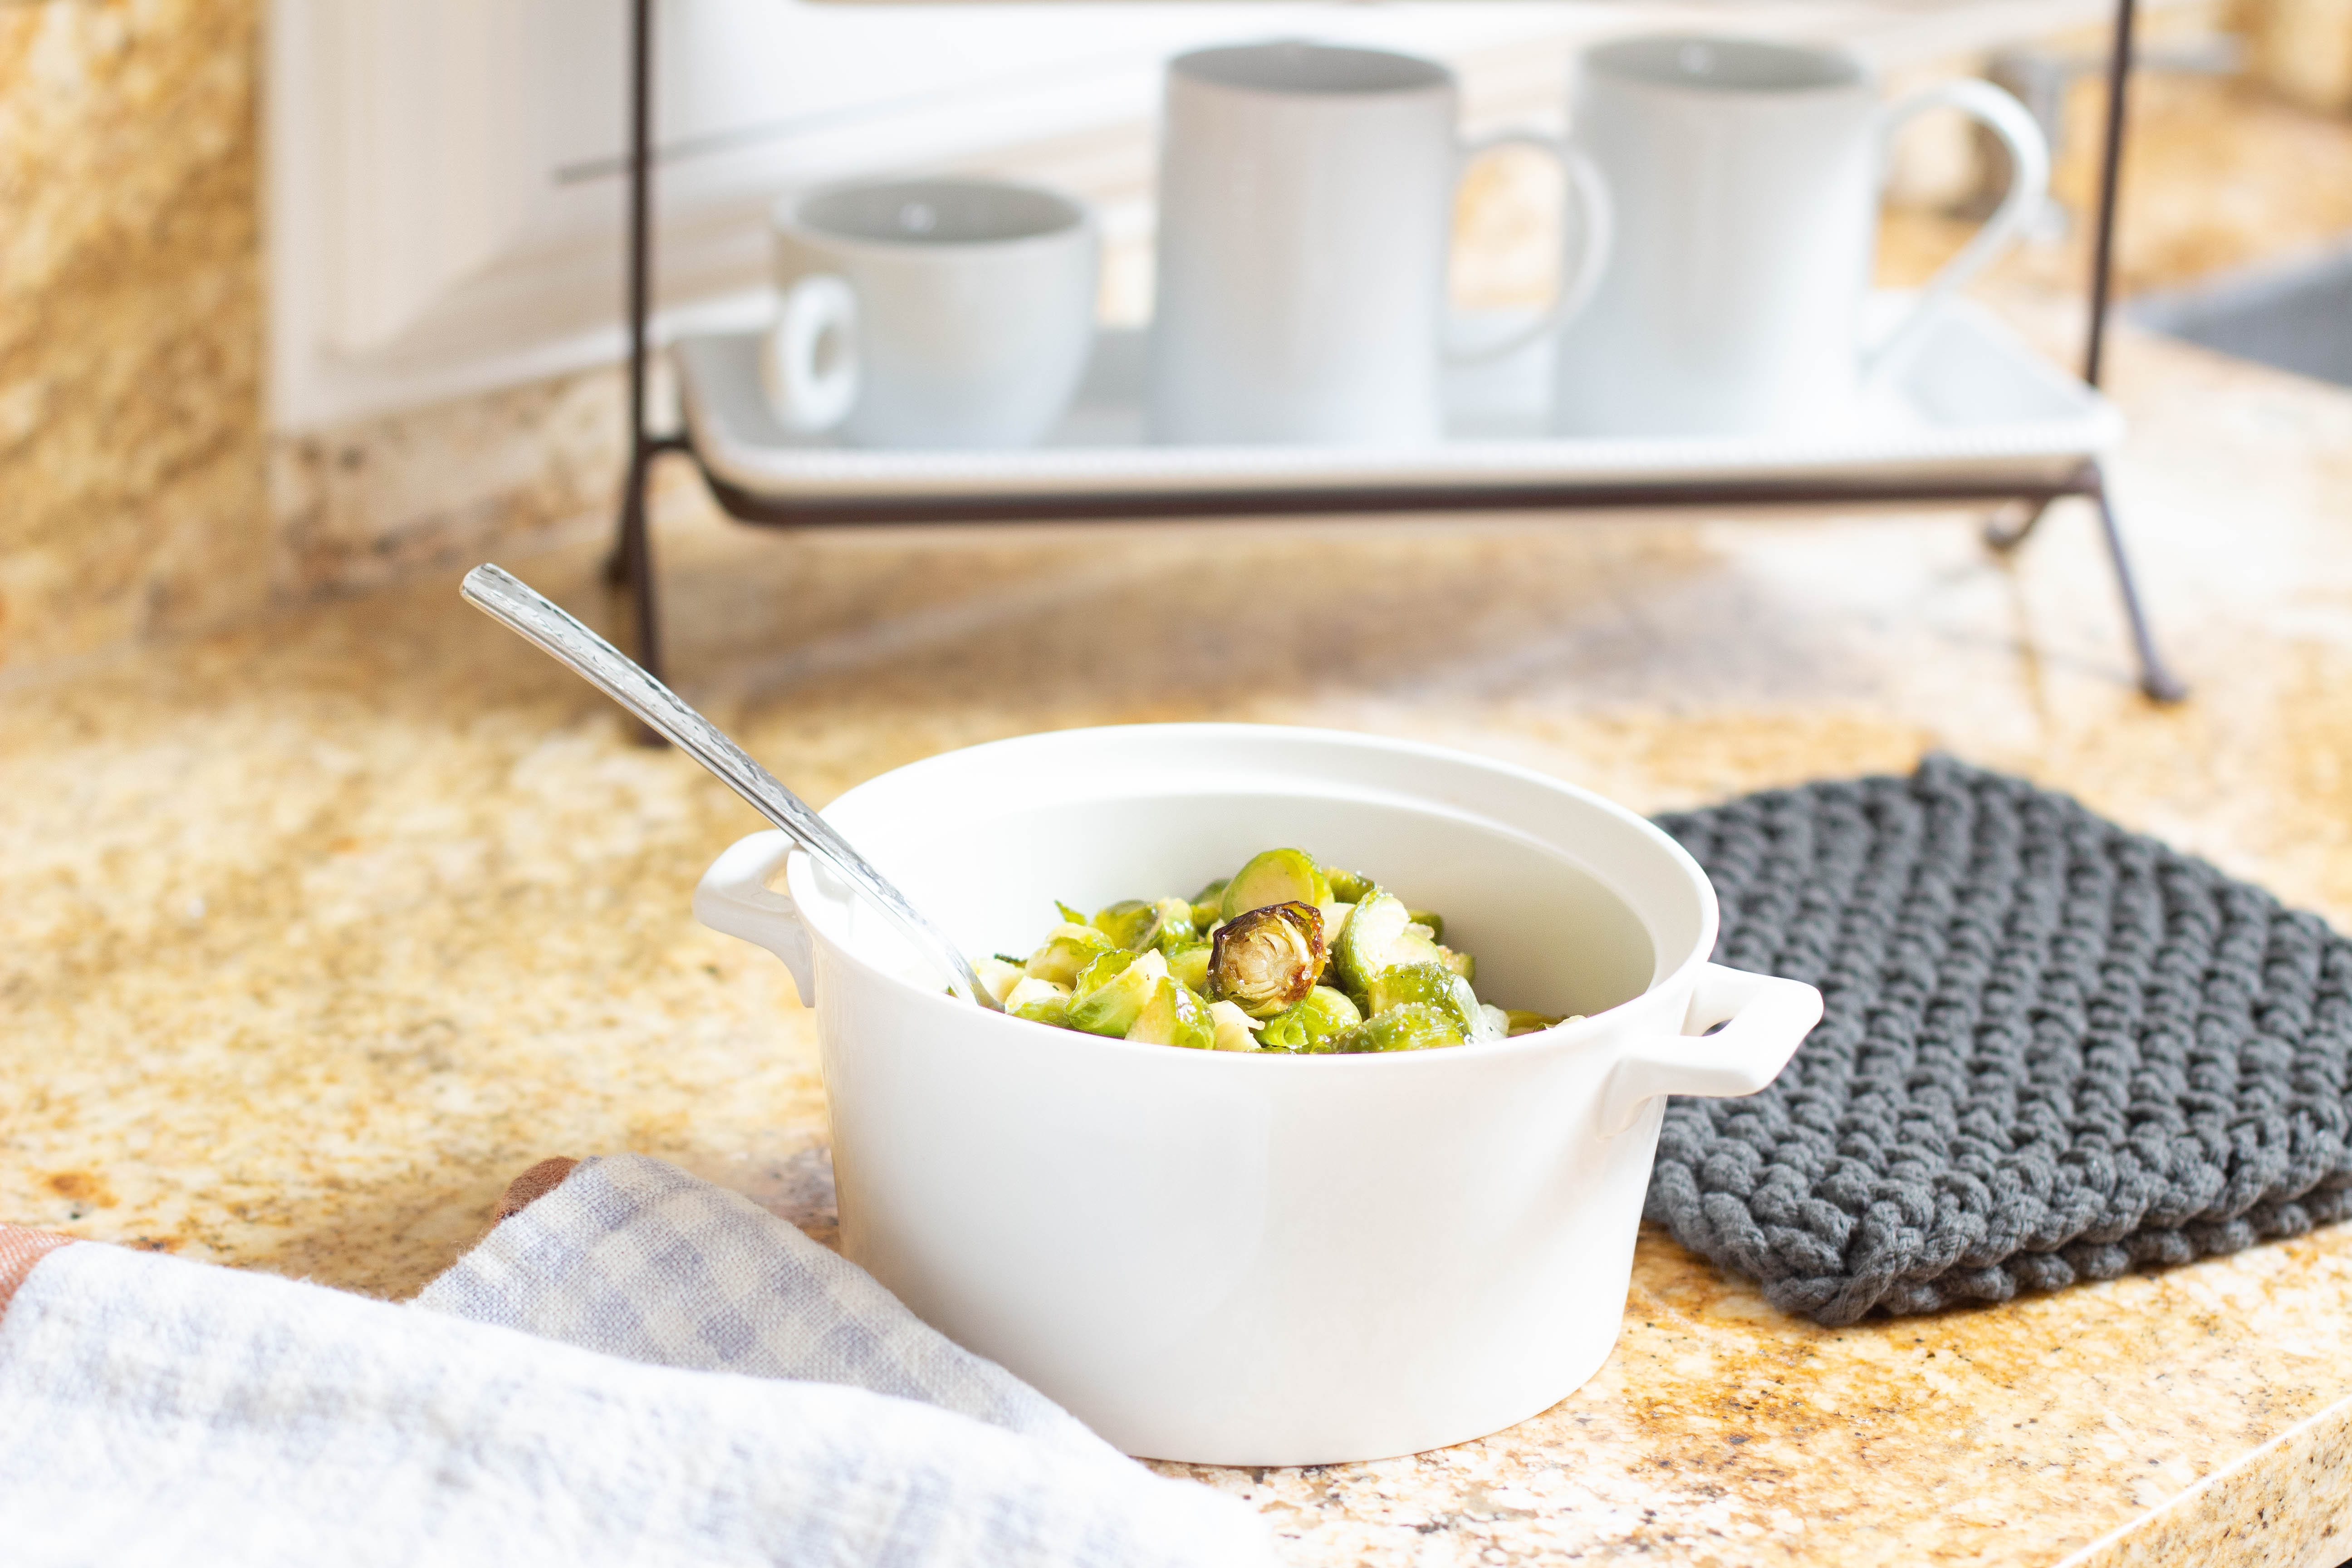 caramelized roasted brussels sprouts recipe for thanksgiving dinner